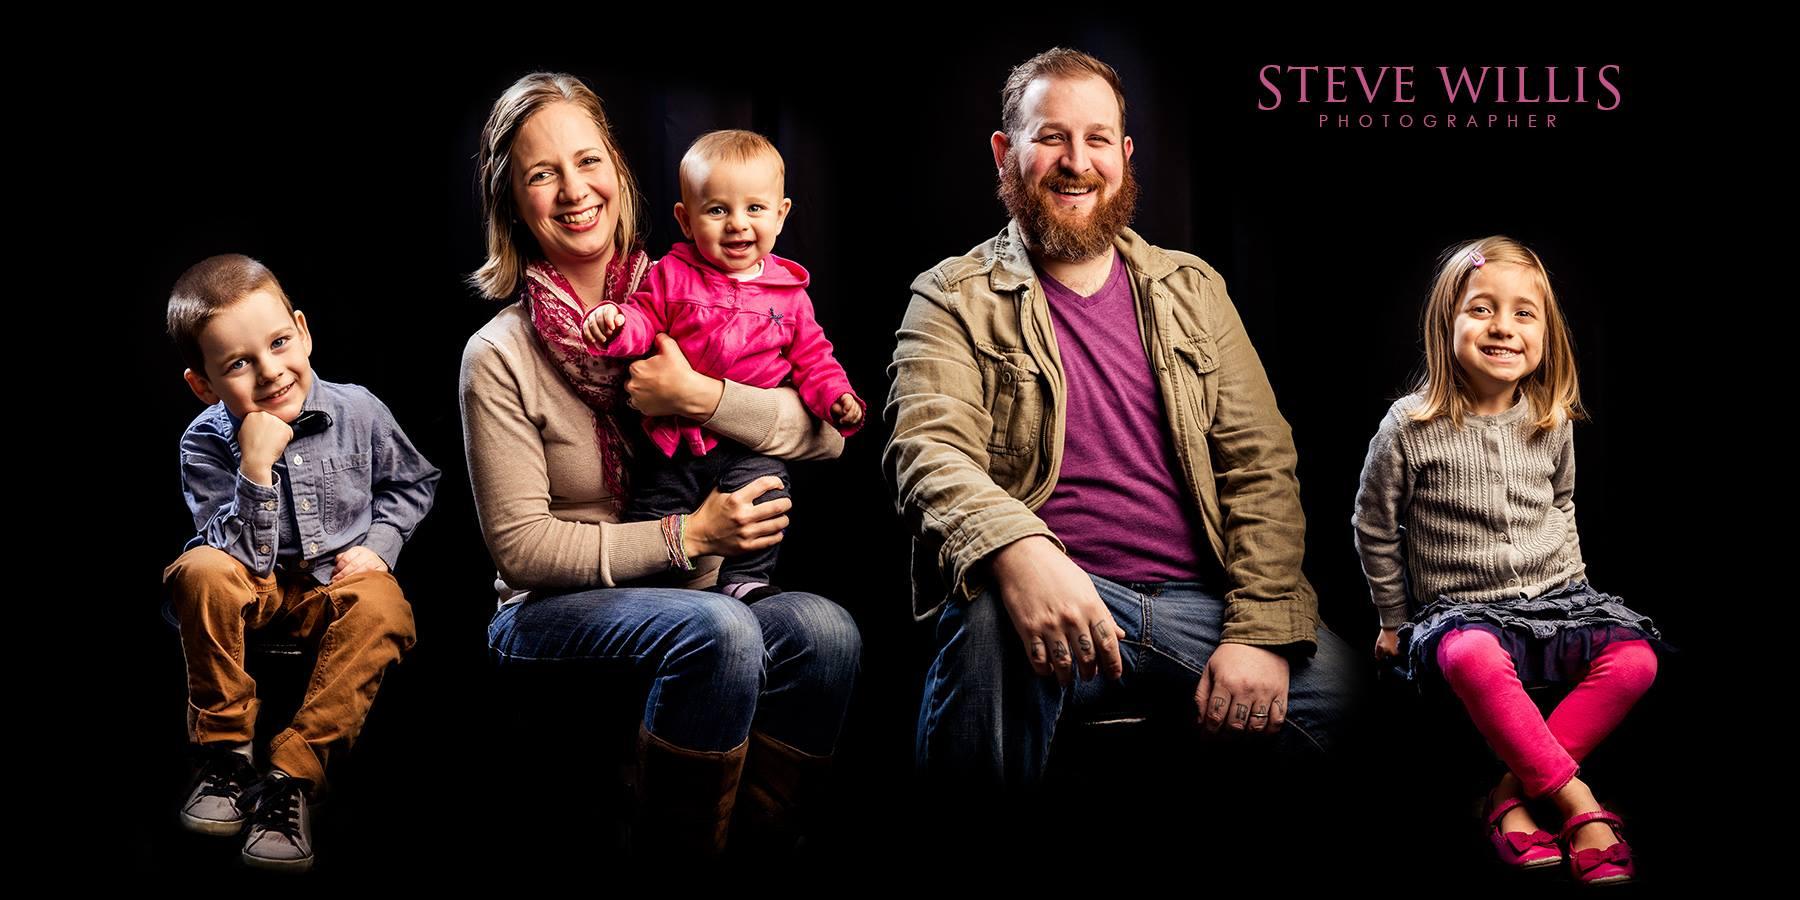 Nathan and Rachel Panke met and were married in Kansas City where they served together on staff and the leadership team at the  International House of Prayer  for 10 years. Both of them served in various roles including leading worship teams, children's ministry, healing and prophecy teams while on staff.  In 2015 Nathan returned to his home town, St. Louis, with wife Rachel and their 3 children Jed, Adaya, and Kyndle. They now serve in leadership roles at  Southgate Church  as well as the  Gateway House of Prayer .  In 2018 they founded Modern Psalmist as means of demystifying prophetic/spontaneous worship by training in most basic techniques and concepts needed to flow in expressing the impressions of the Holy Spirit.  Nathan and Rachel are fervent about sharing on prayer, worship, and the passionate heart of God to this generation.